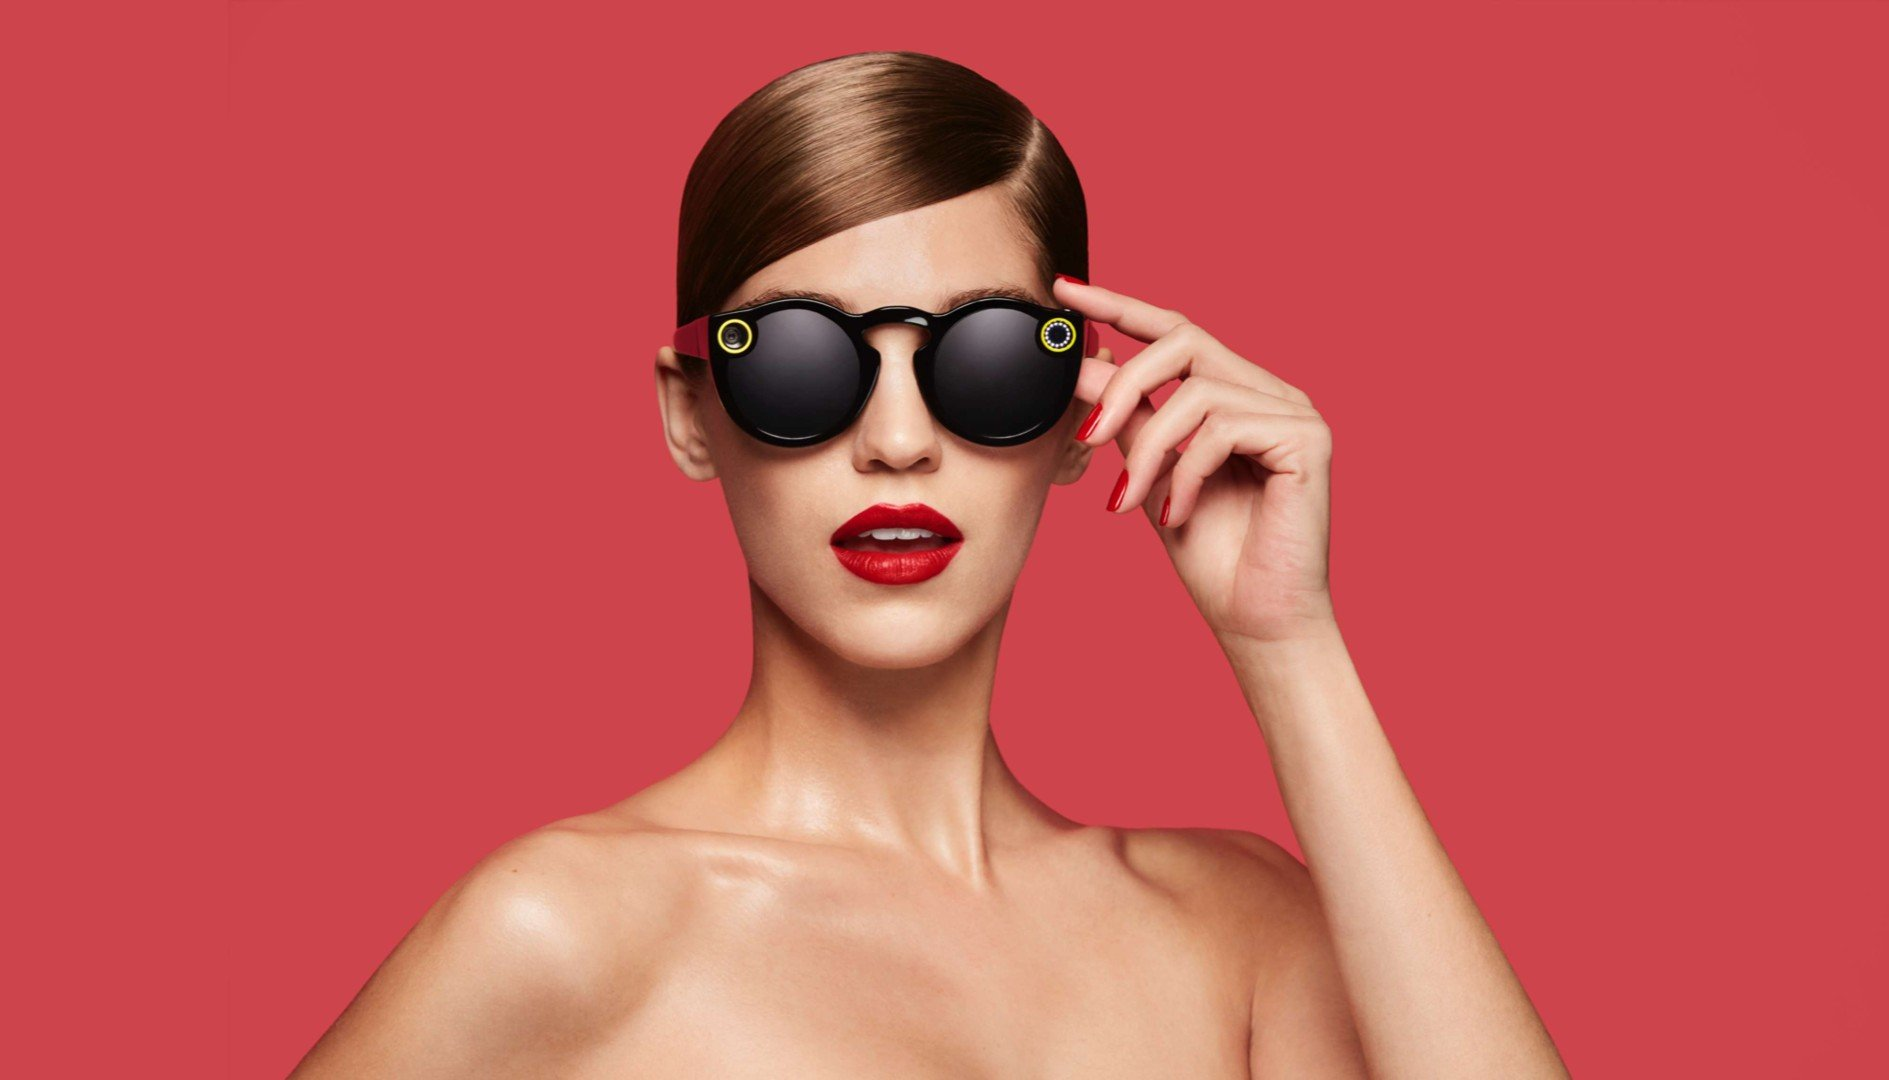 3bf8e1fea69 These sunglasses with built-in camera are Snapchat s answer to Google s  widely mocked and creepy eyewear